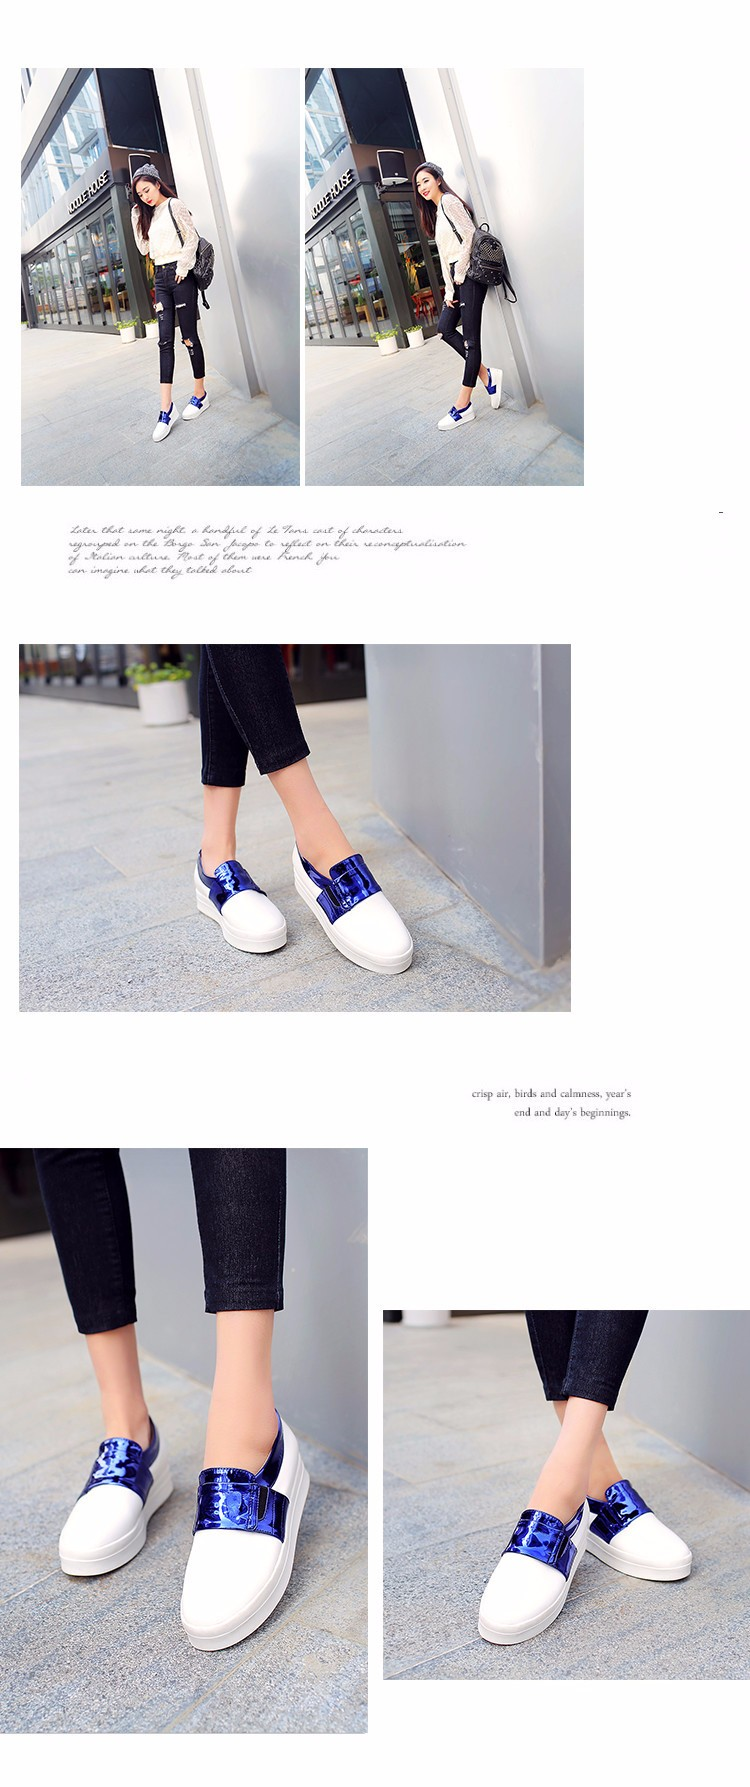 2016 New Spring Fall Fashion Flat Women Loafers Shoes Platform A Pedal Lazy Female Single Shoes Blue Gold Plus Size 40-43 Z3.5